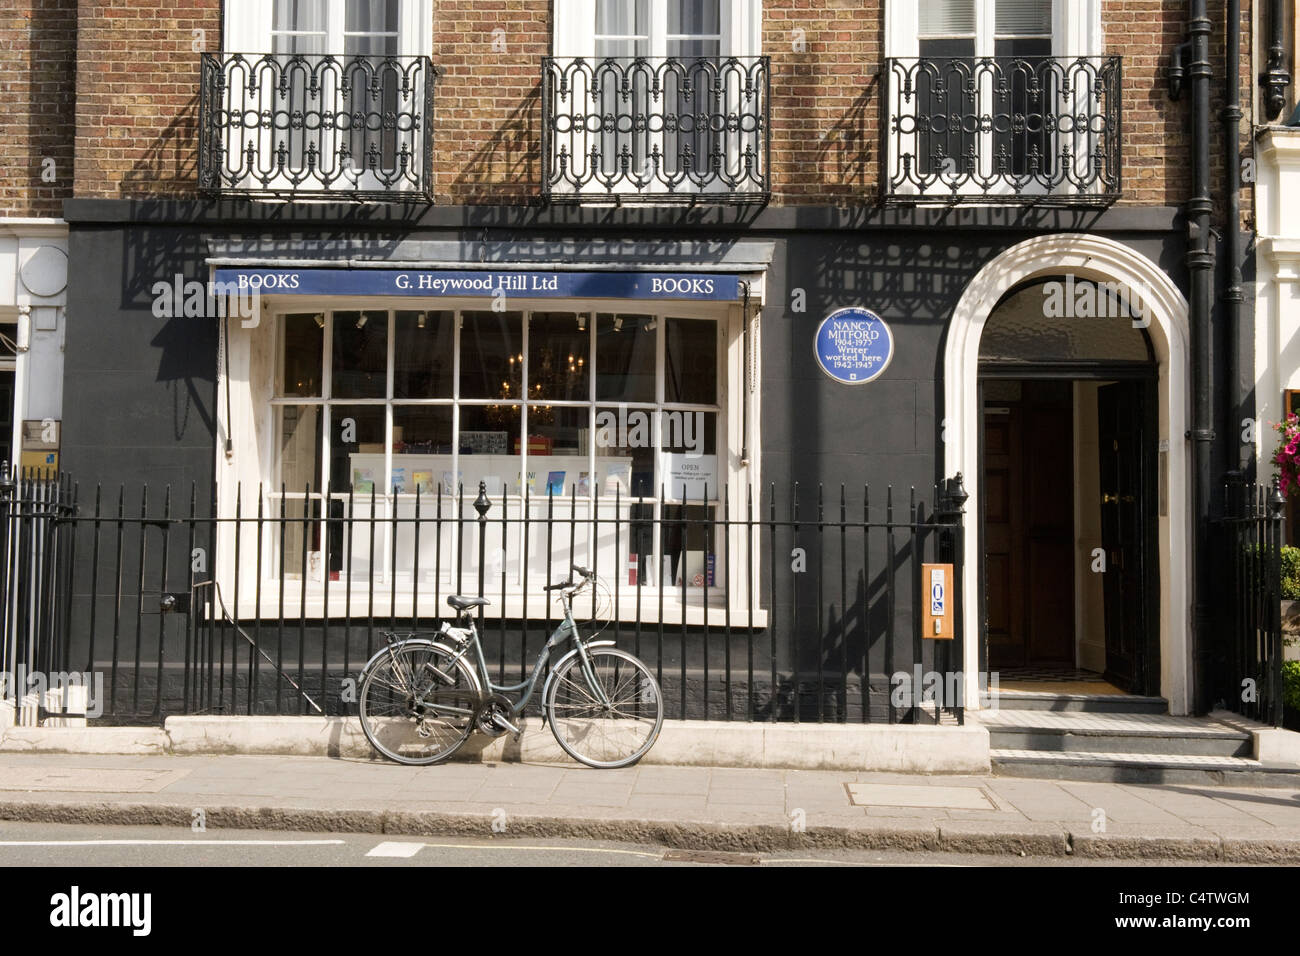 London Mayfair G Heywood Hill traditional book shop or store where writer author authoress Nancy Mitford worked - Stock Image